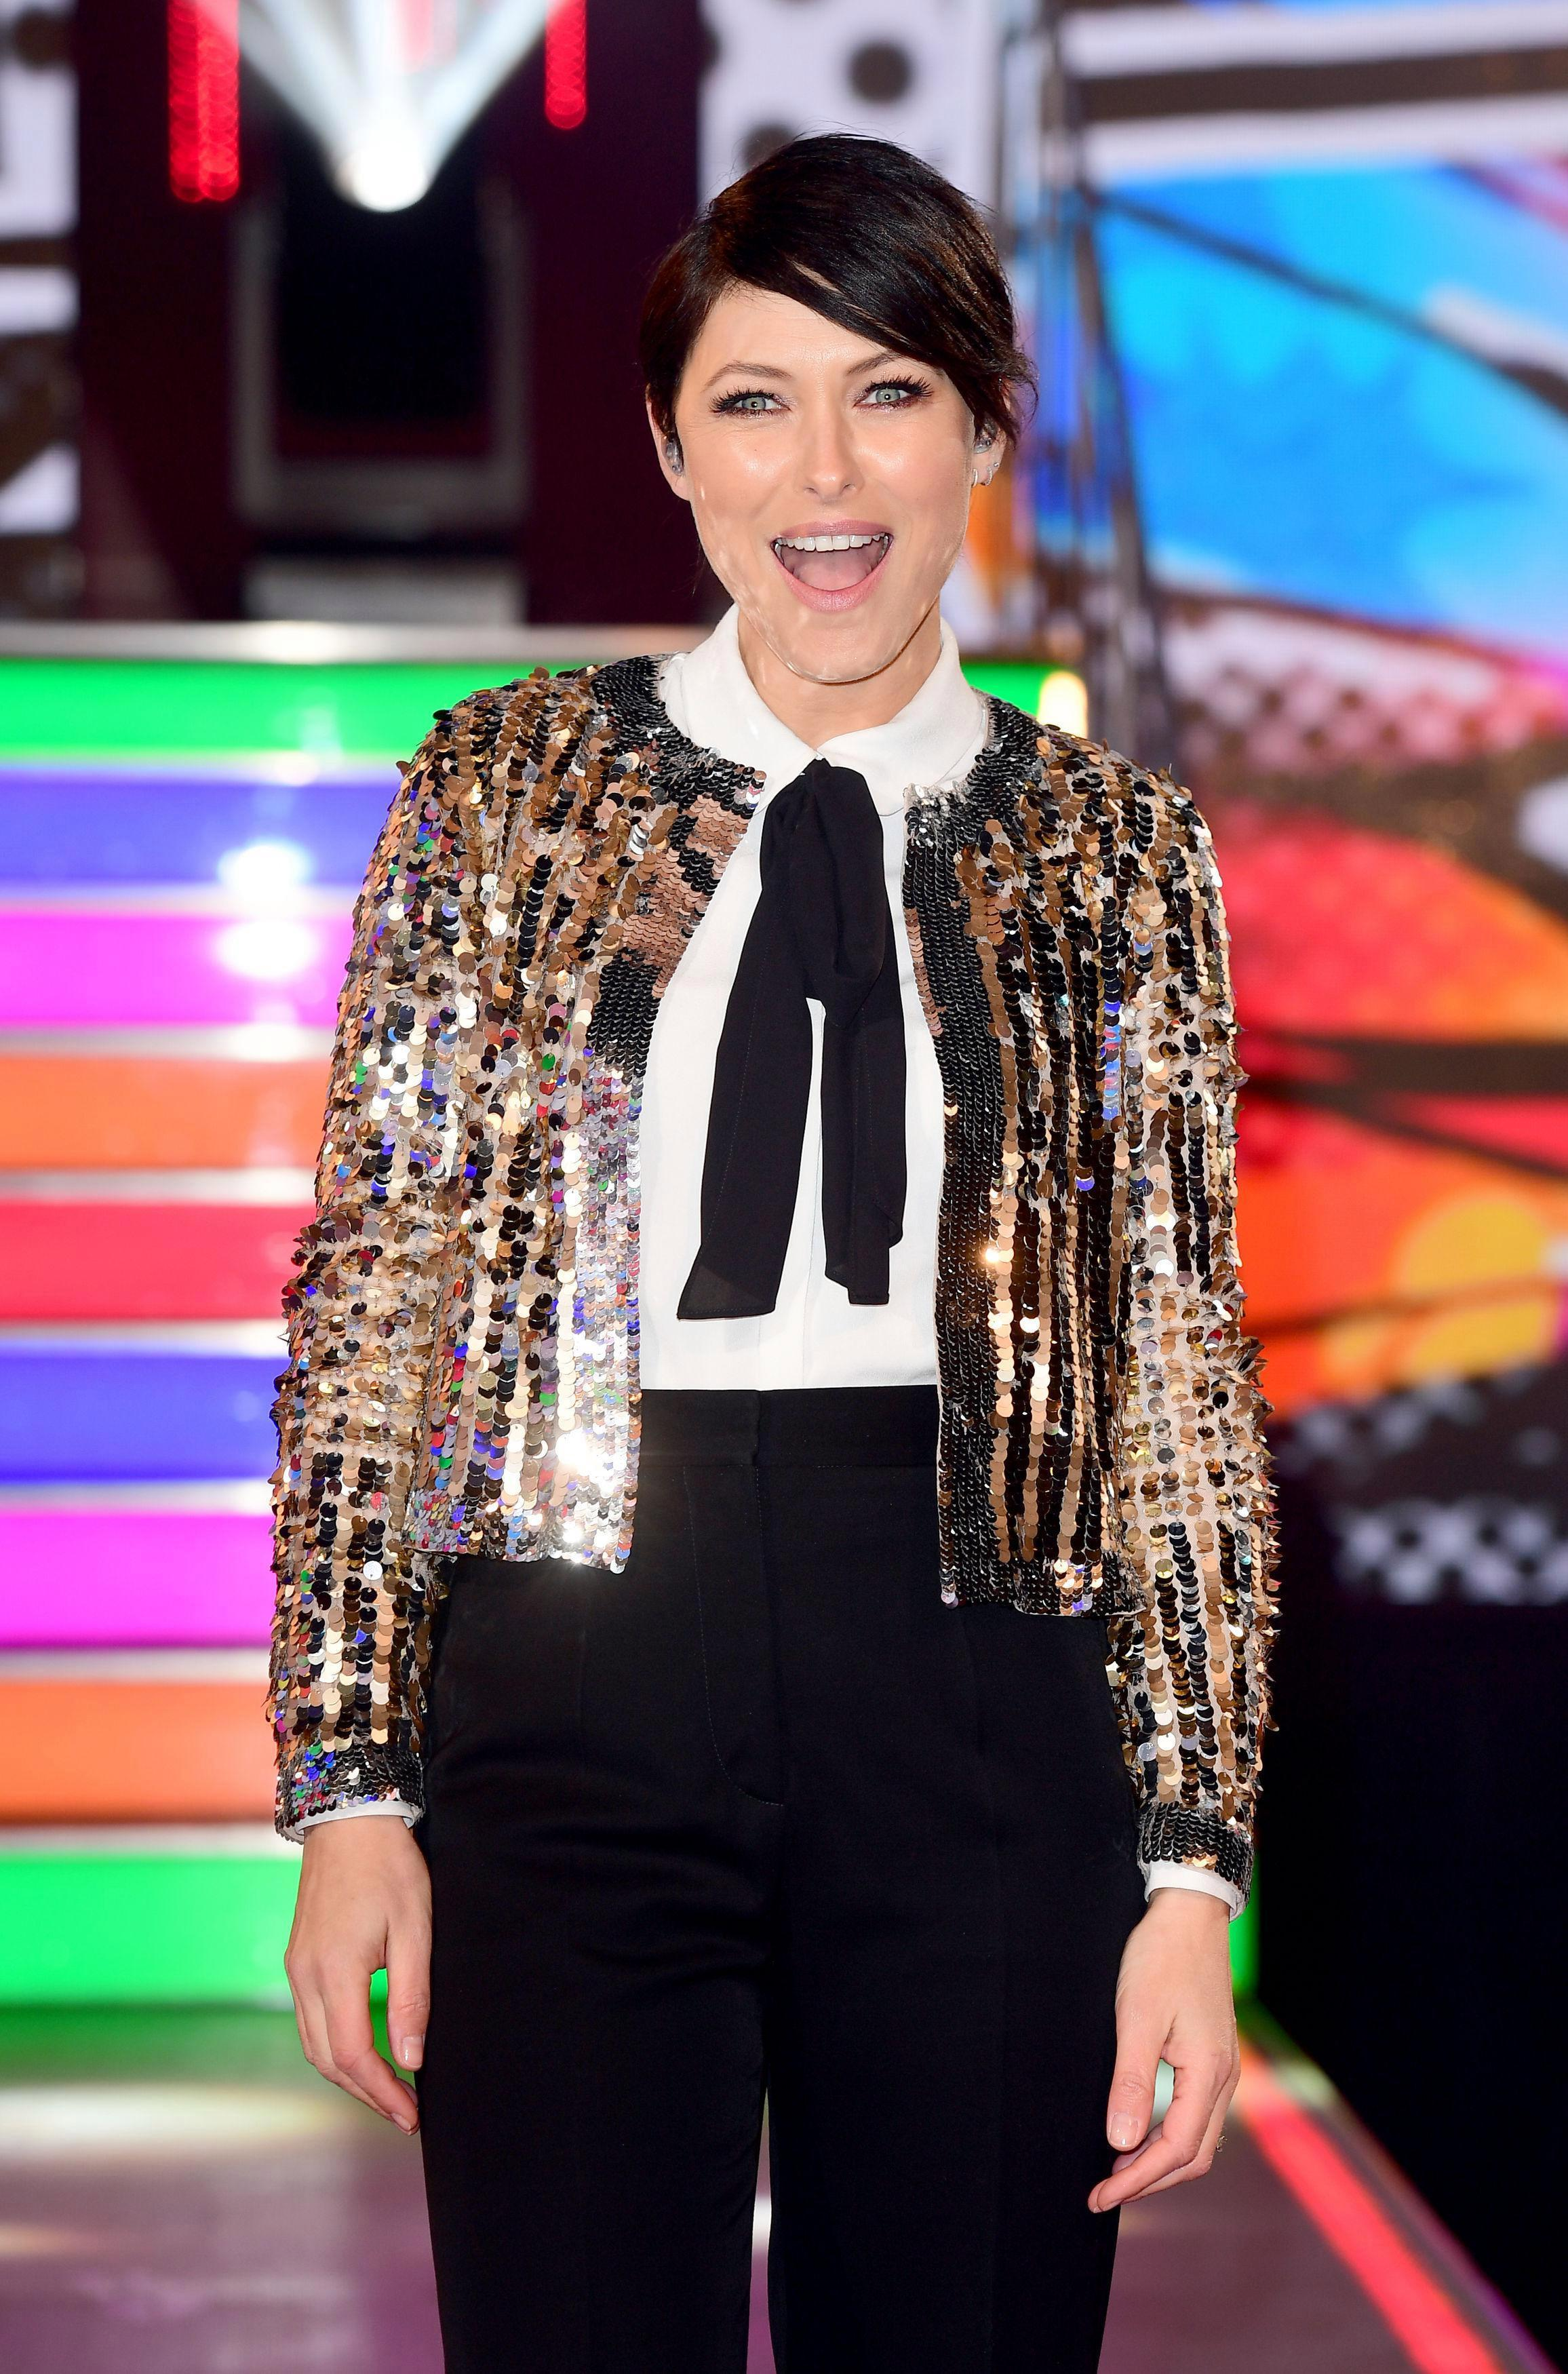 Emma Willis – 5 facts about the Celebrity Big Brother 2018 and The Voice host